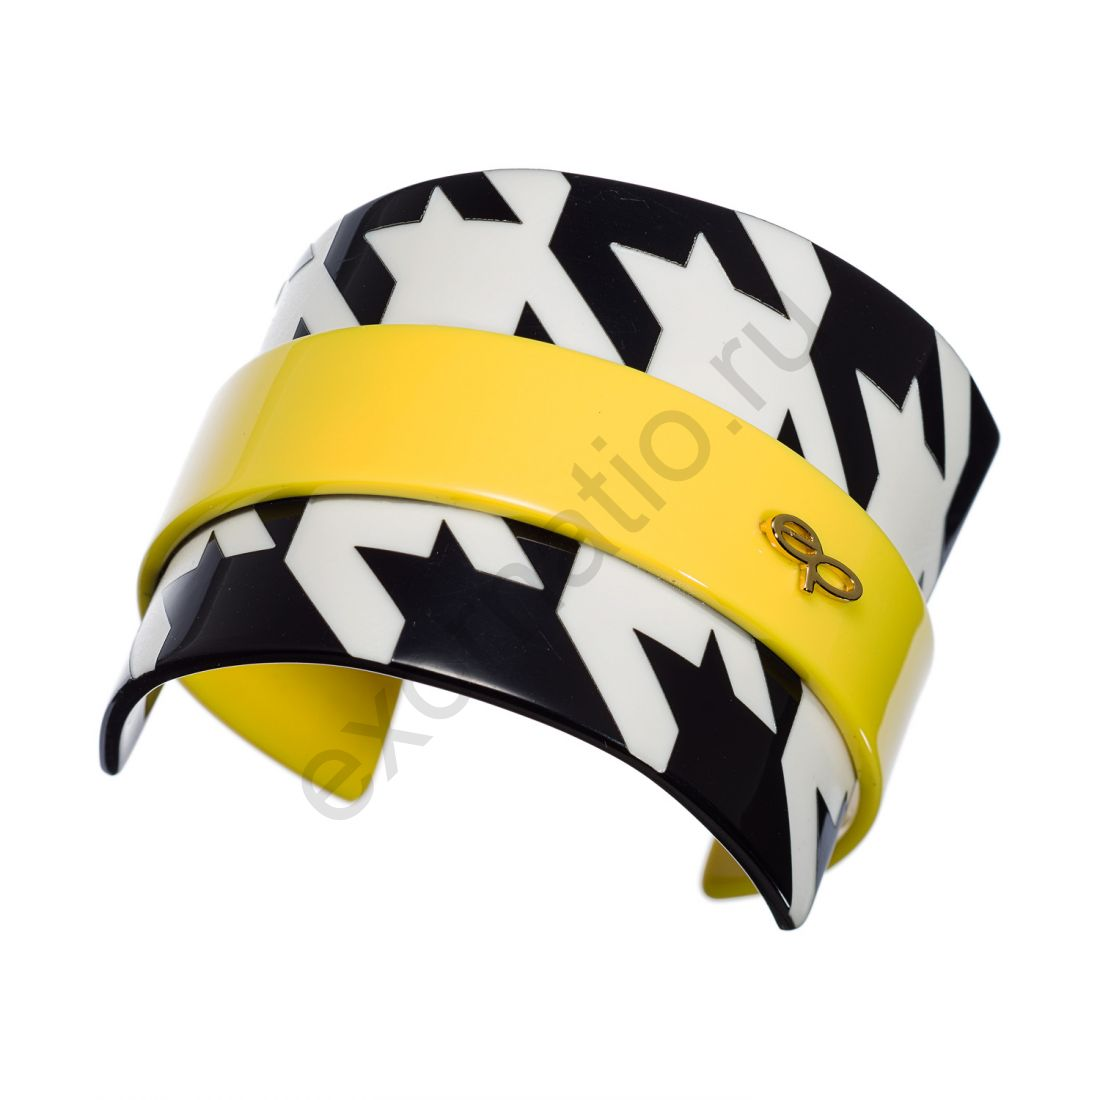 Браслет Houndstooth Yellow